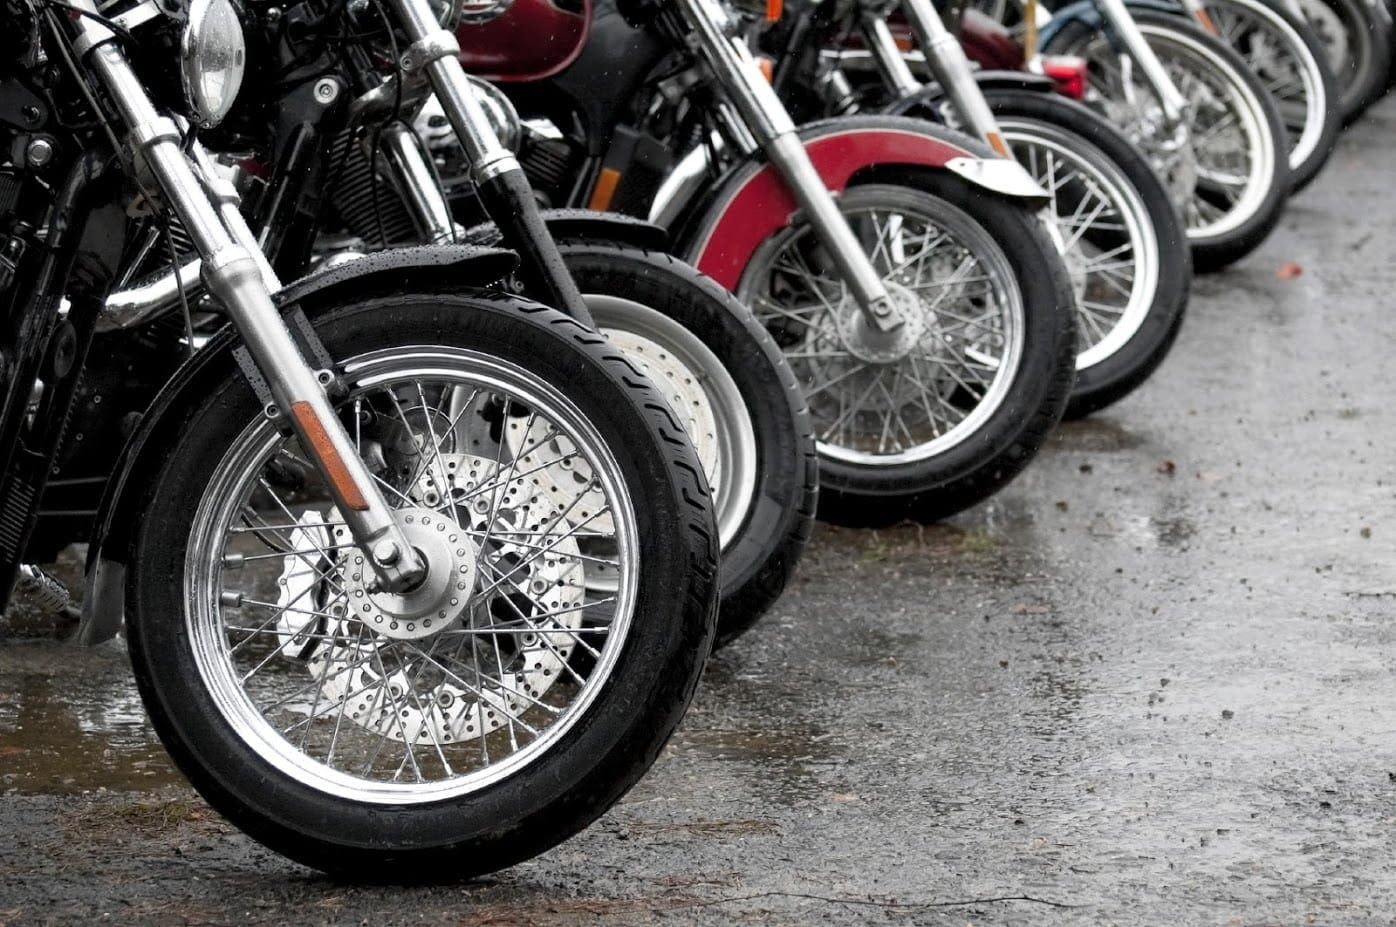 Line Of Parked Motorcycles Stock Photo